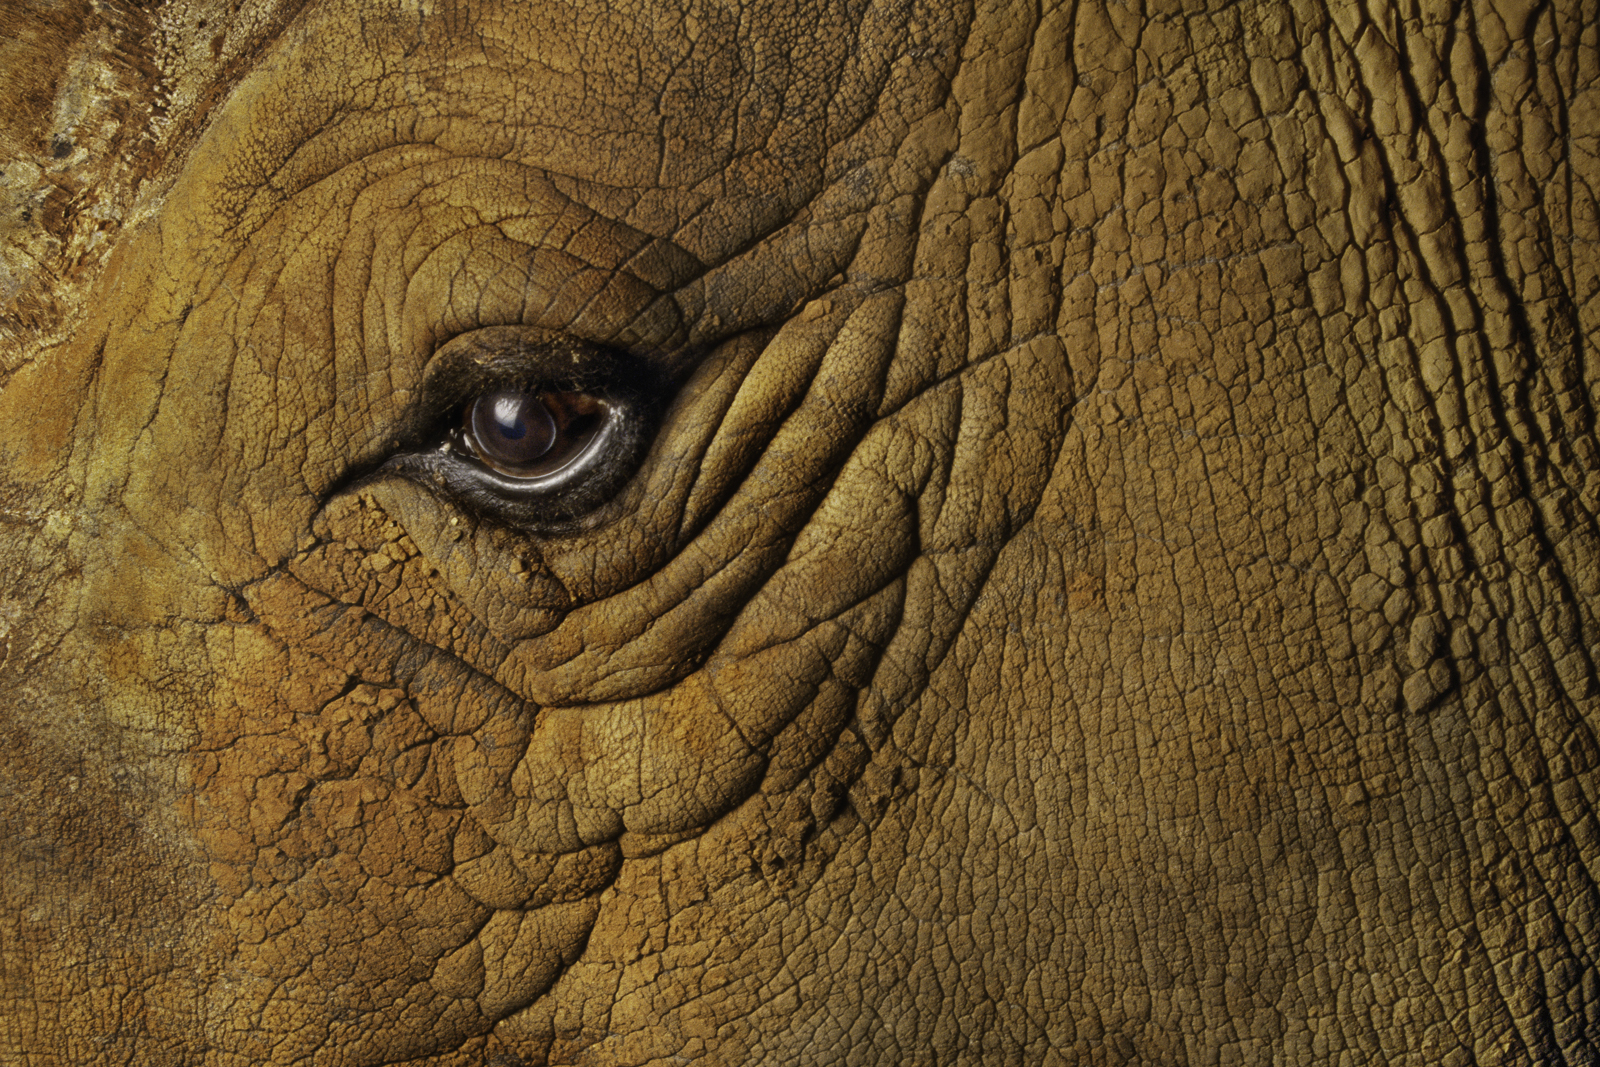 White rhinoceros eye, native to Southern Africa